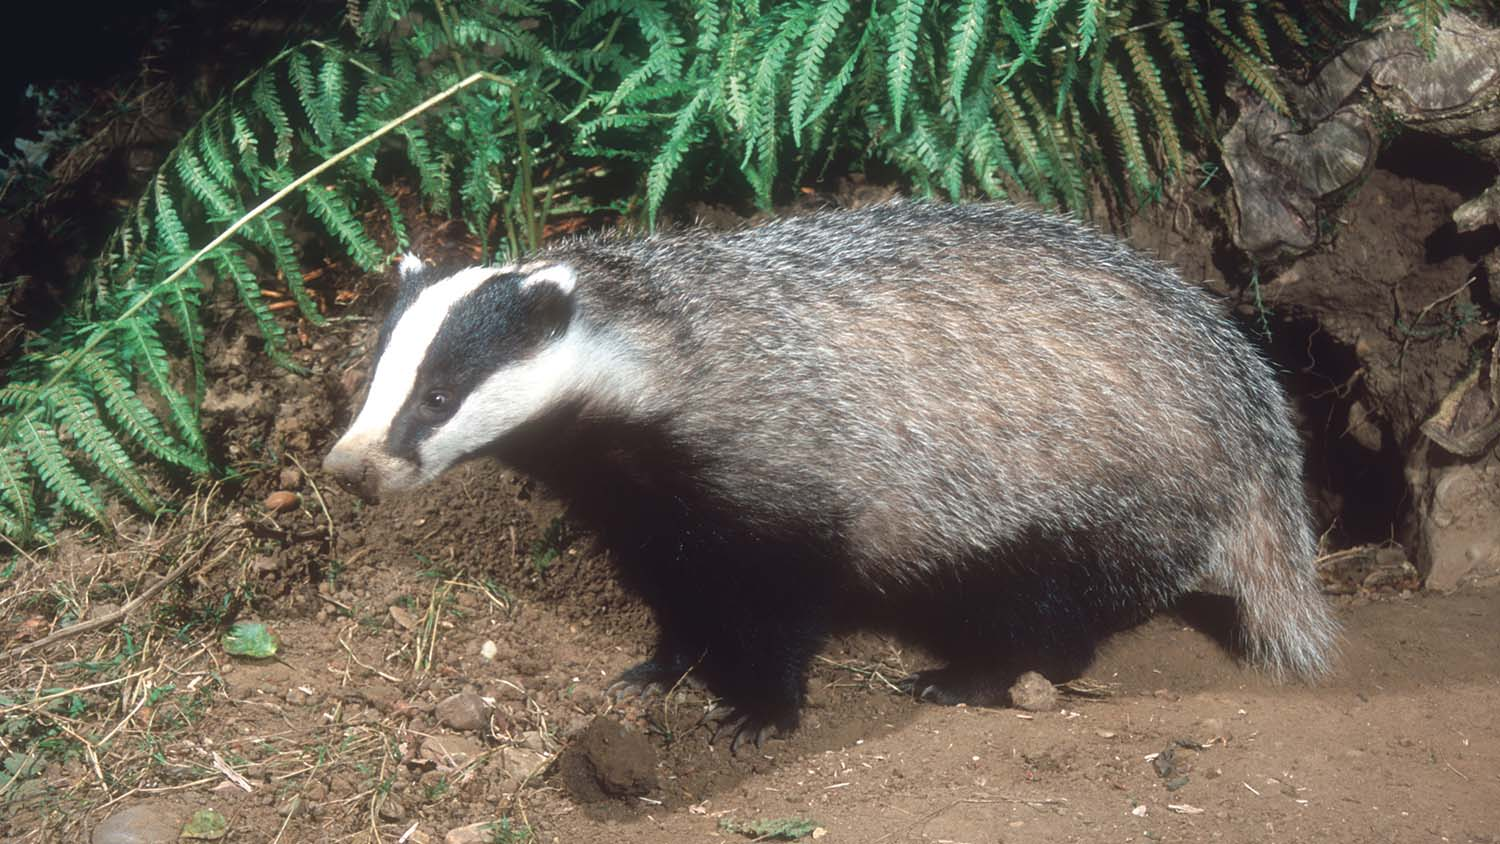 5,000 badger vaccines administered in West Wales since 2010